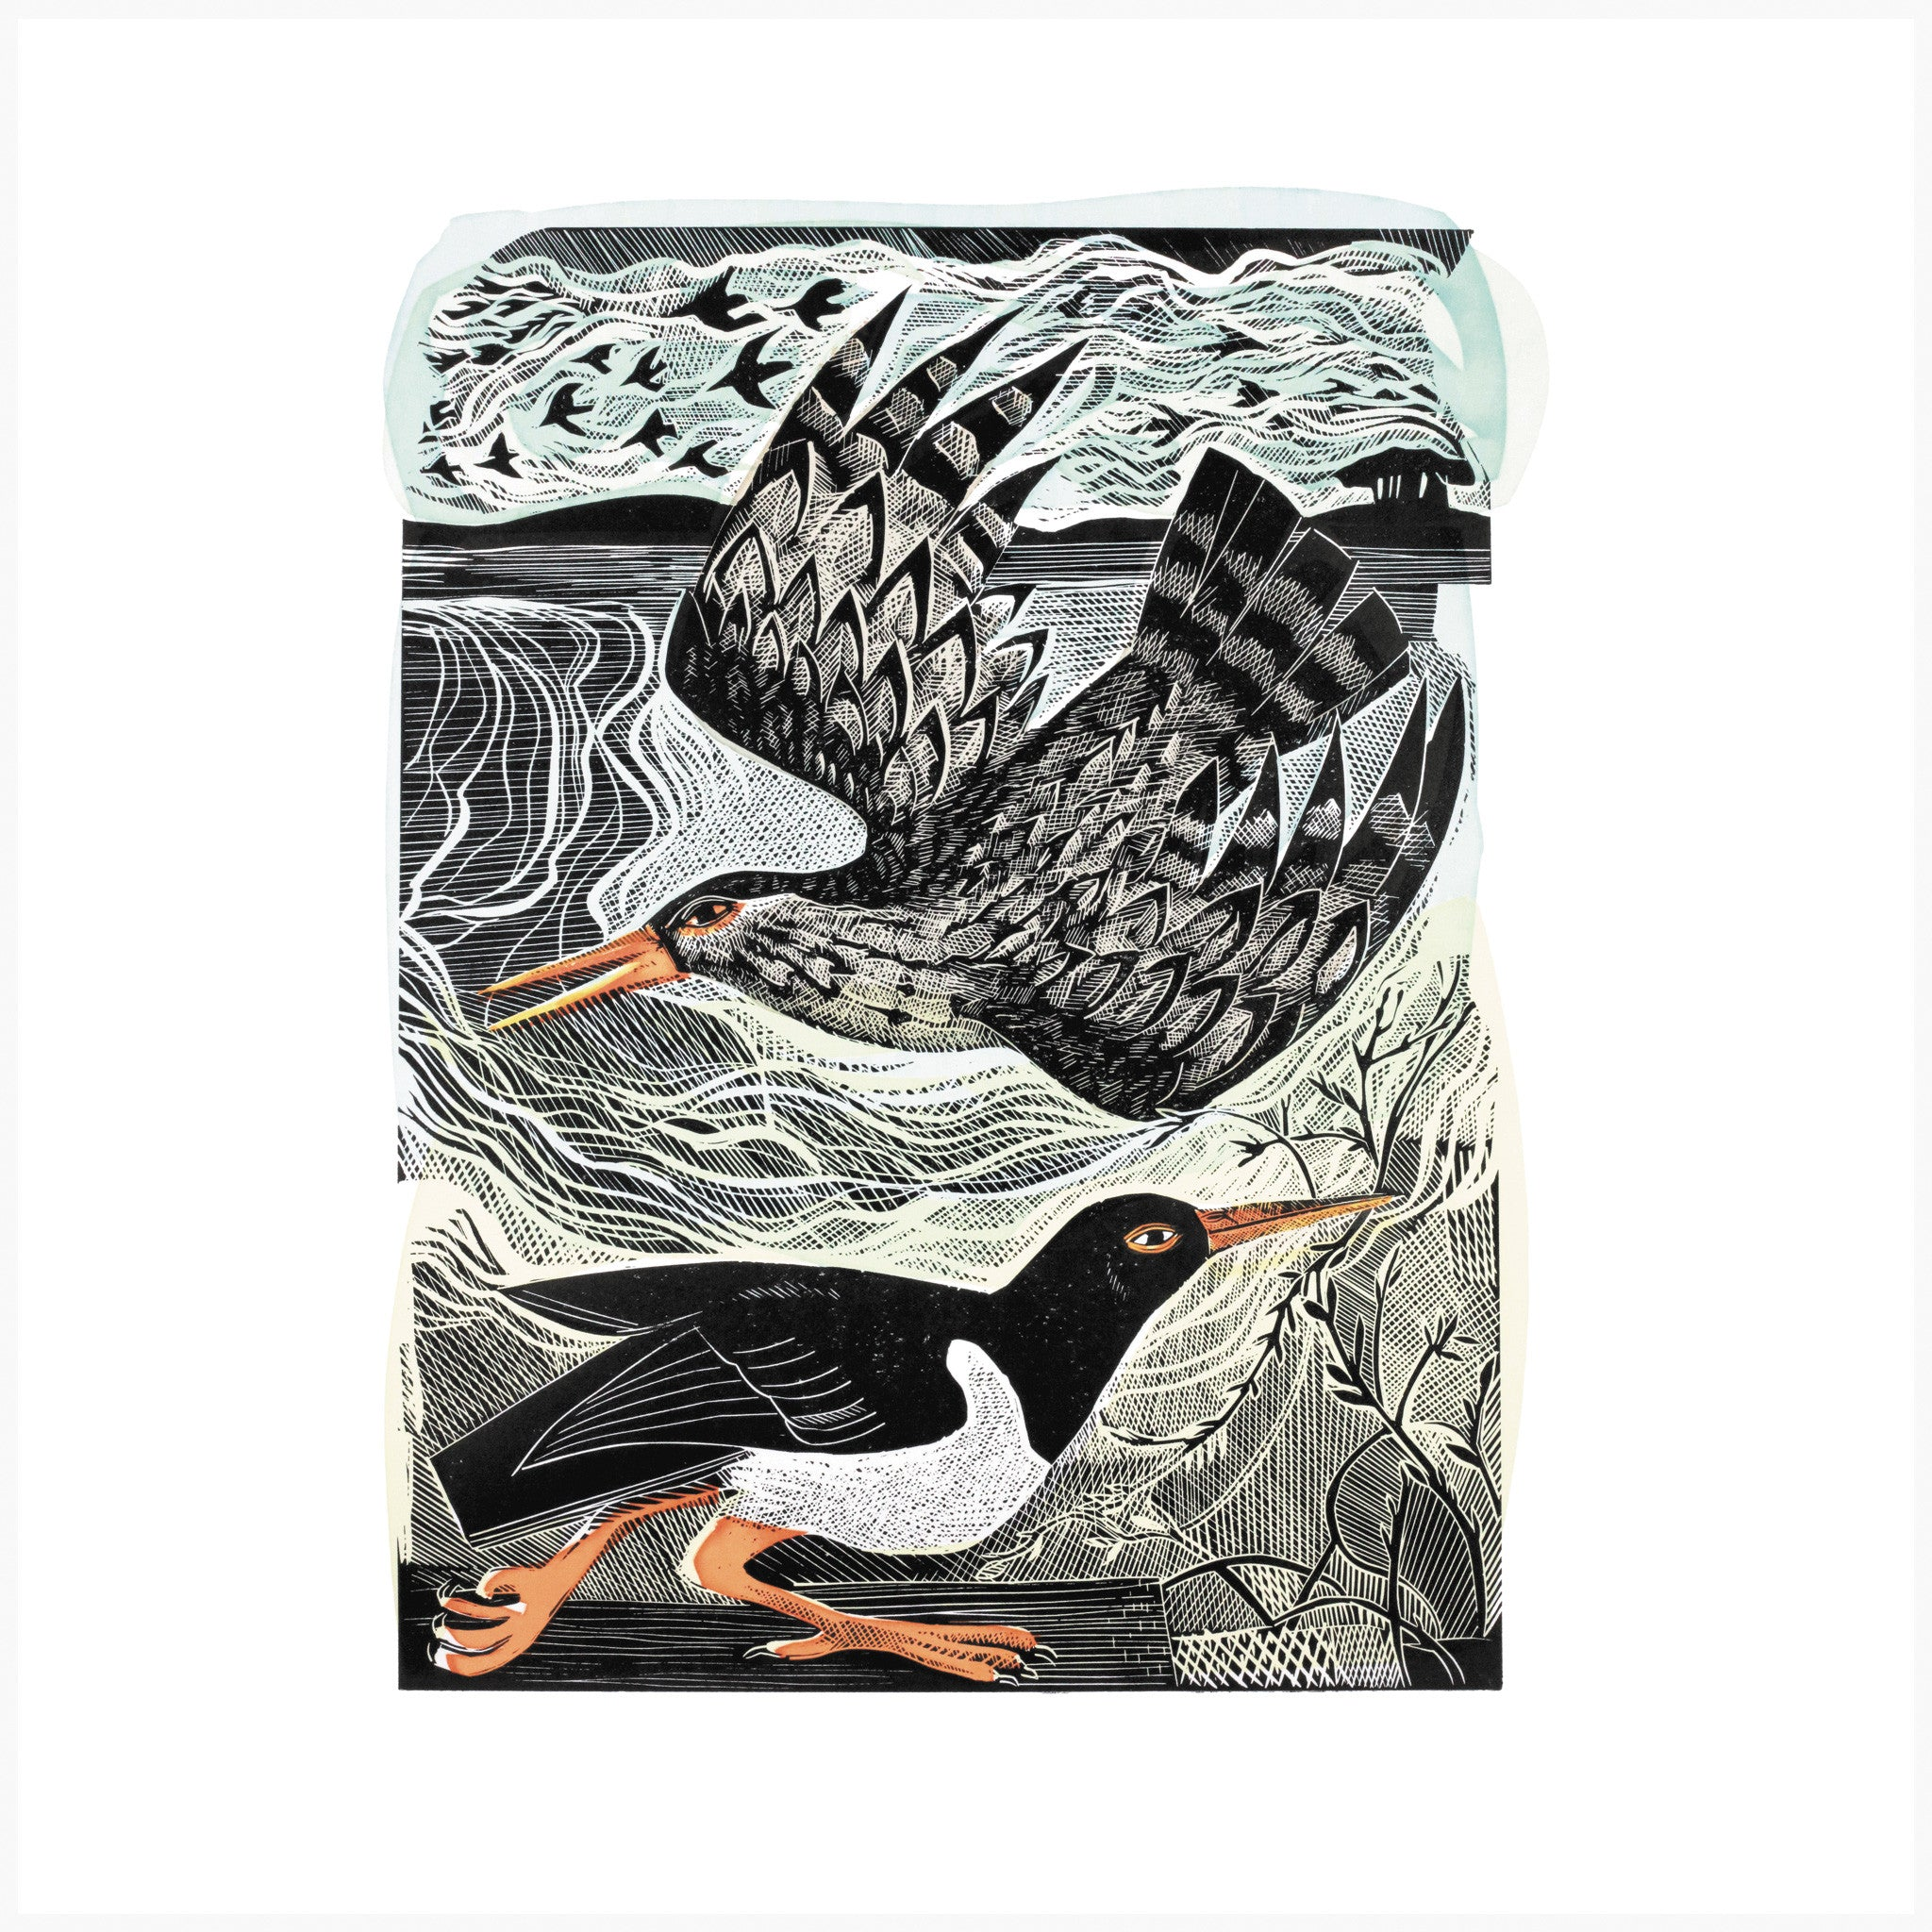 Redshank and Oystercatcher, Linocut Print by Angela Hardin